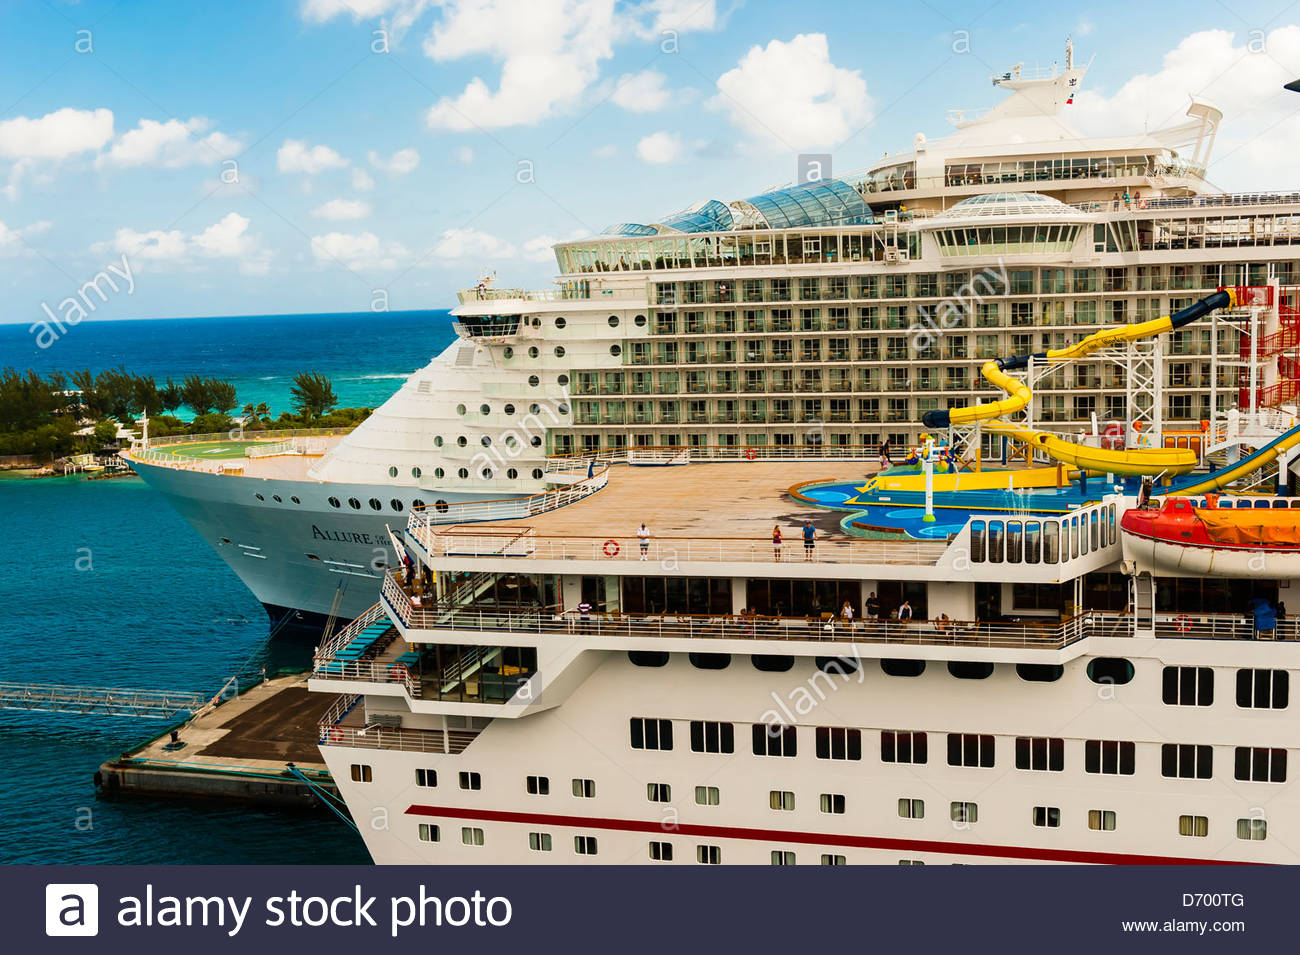 Carnival fantasy and royal caribbean allure of the sea docked in stock photo royalty free image - The allure of the modular home ...